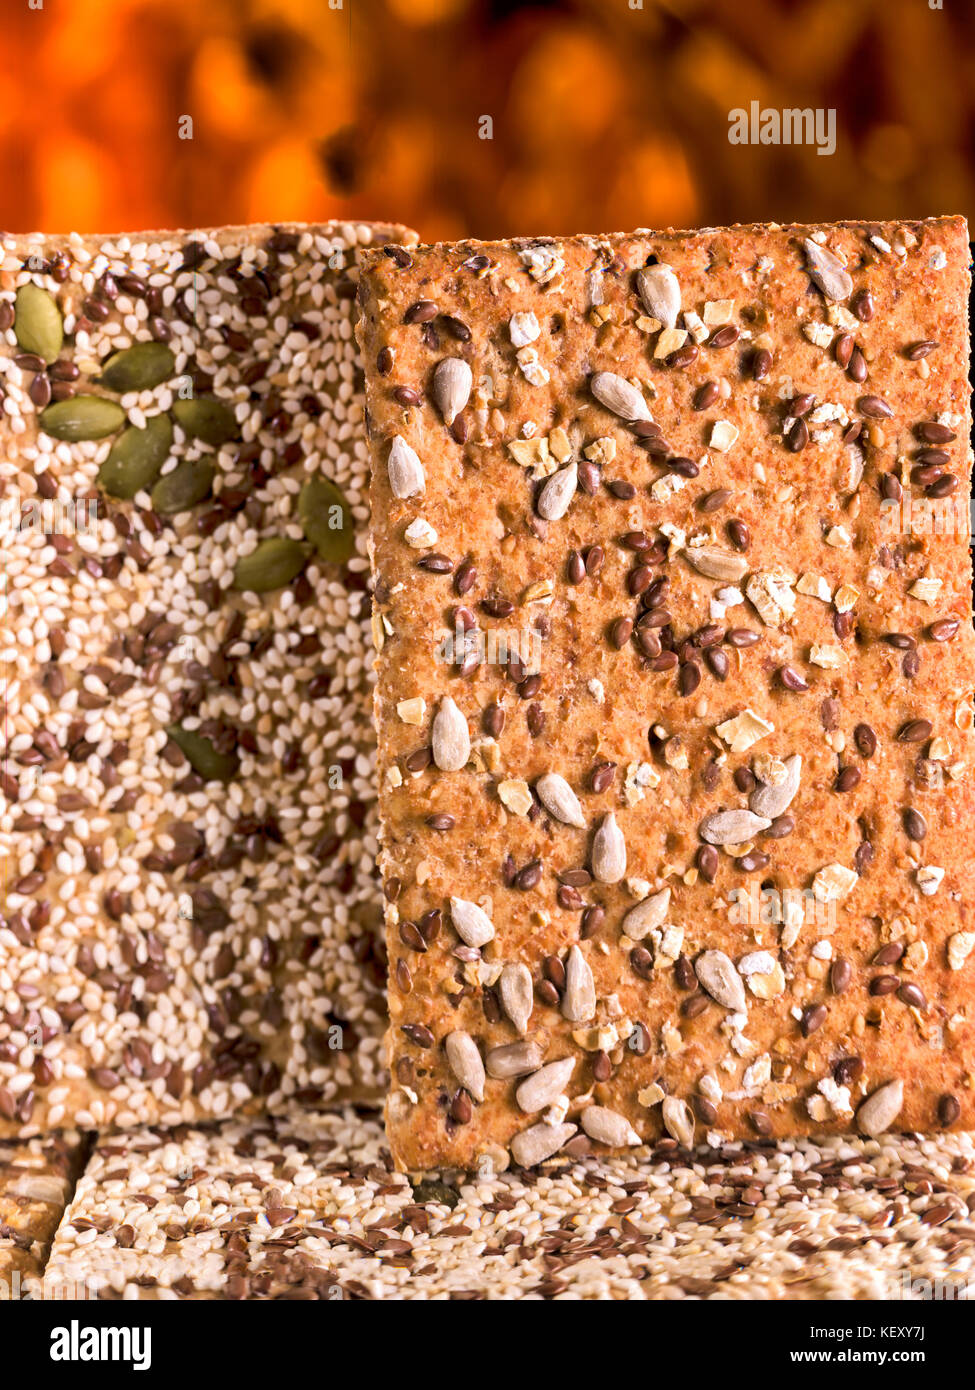 two grain covered crisp breads as a close up macro photographCrisp-bread - Stock Image